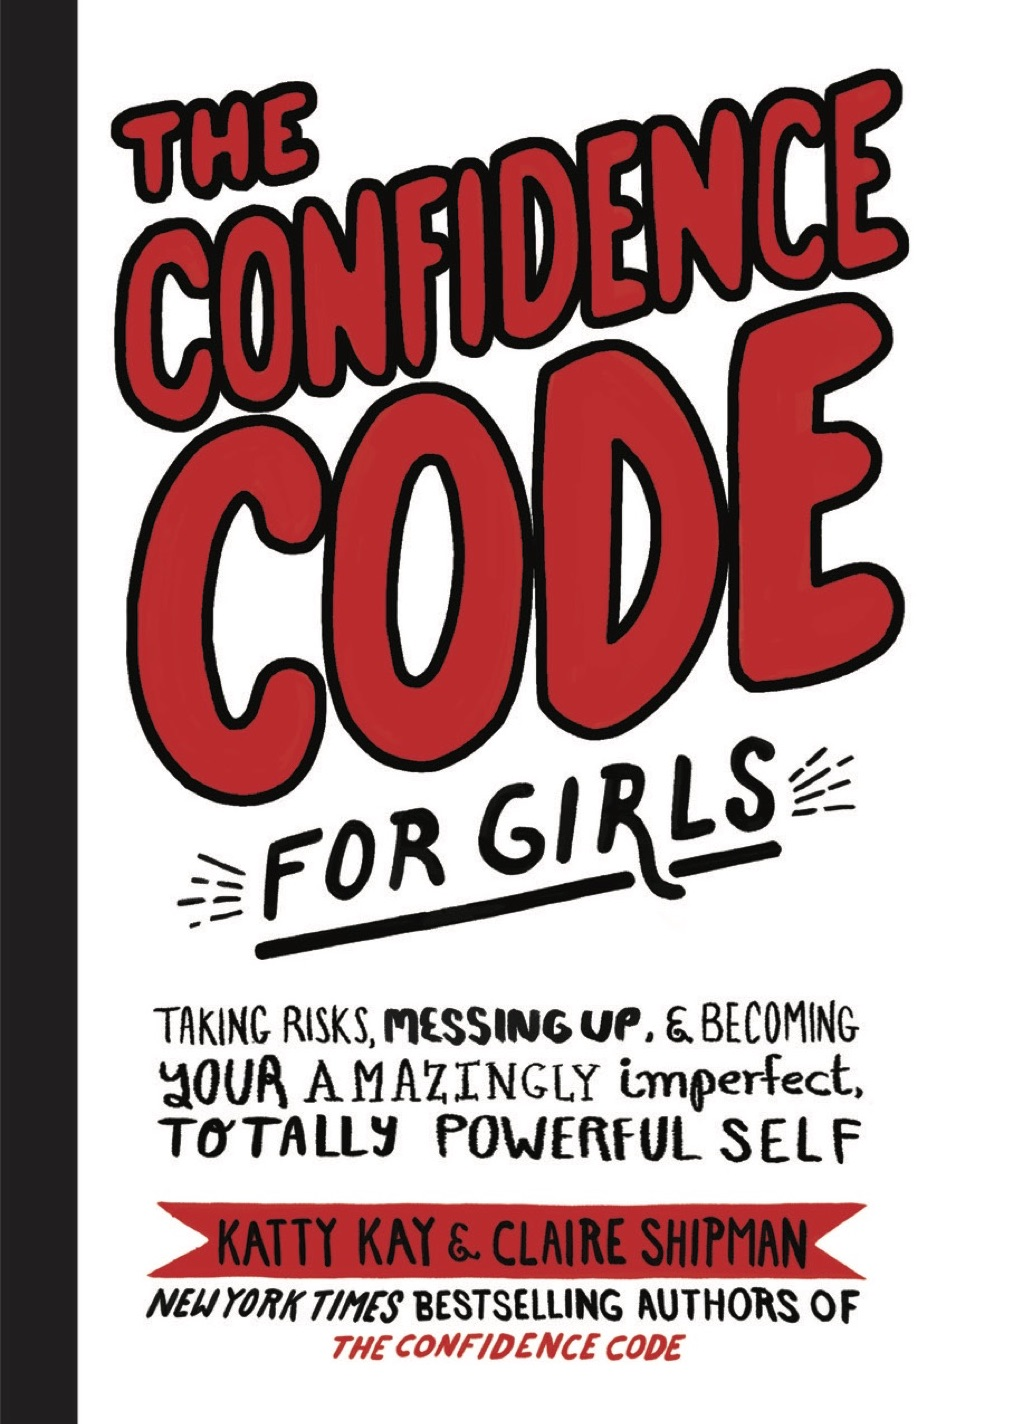 The Confidence Code interview